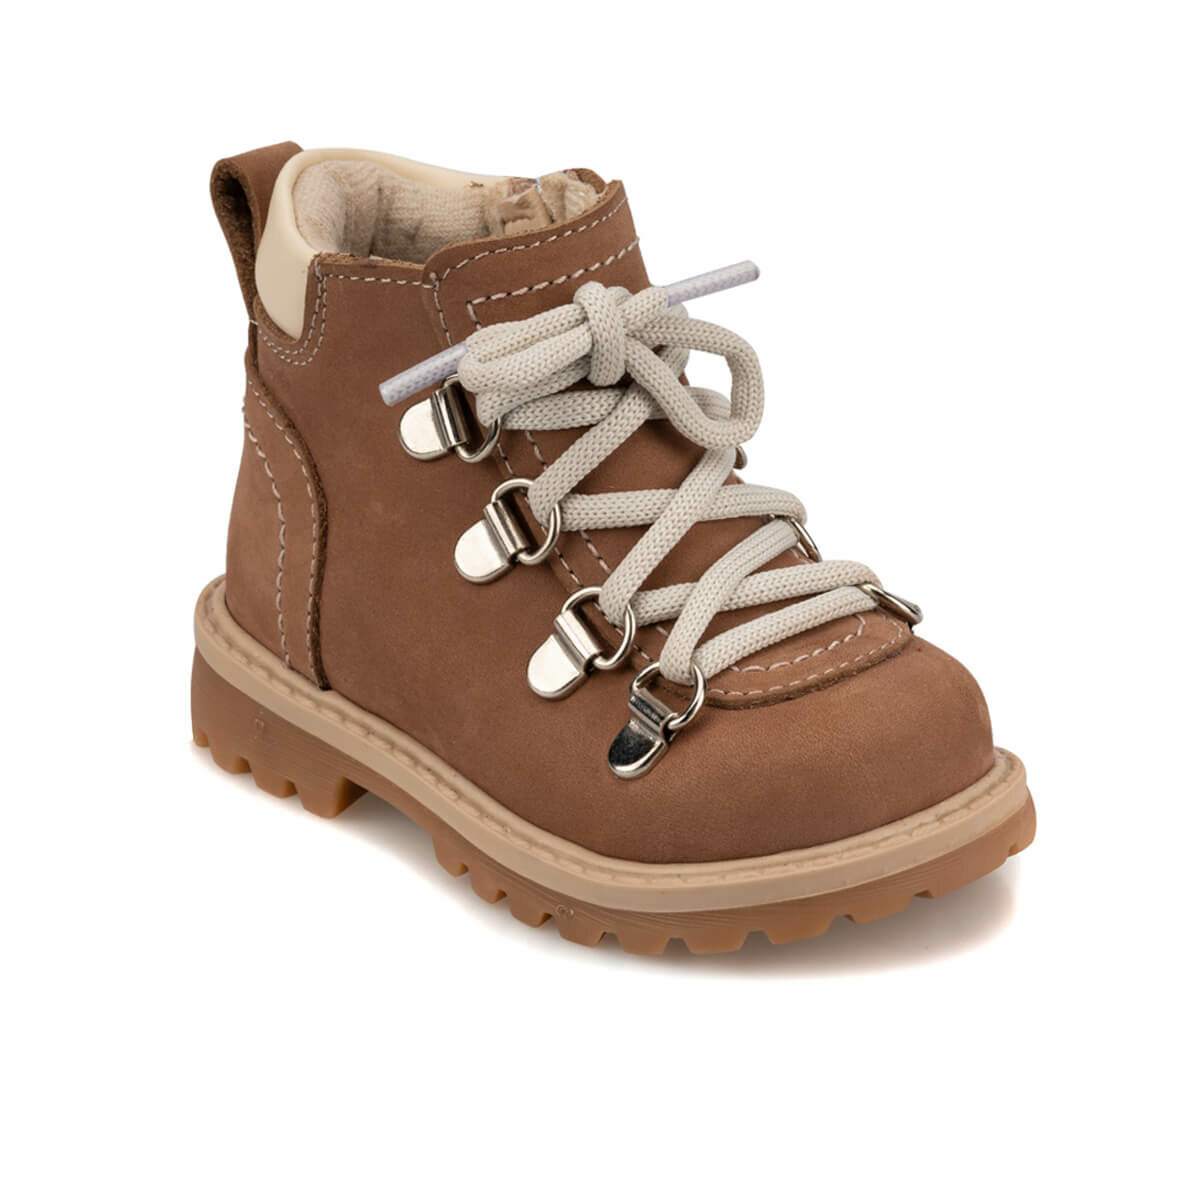 FLO 92.509544.I Sand Color Male Child Boots Polaris